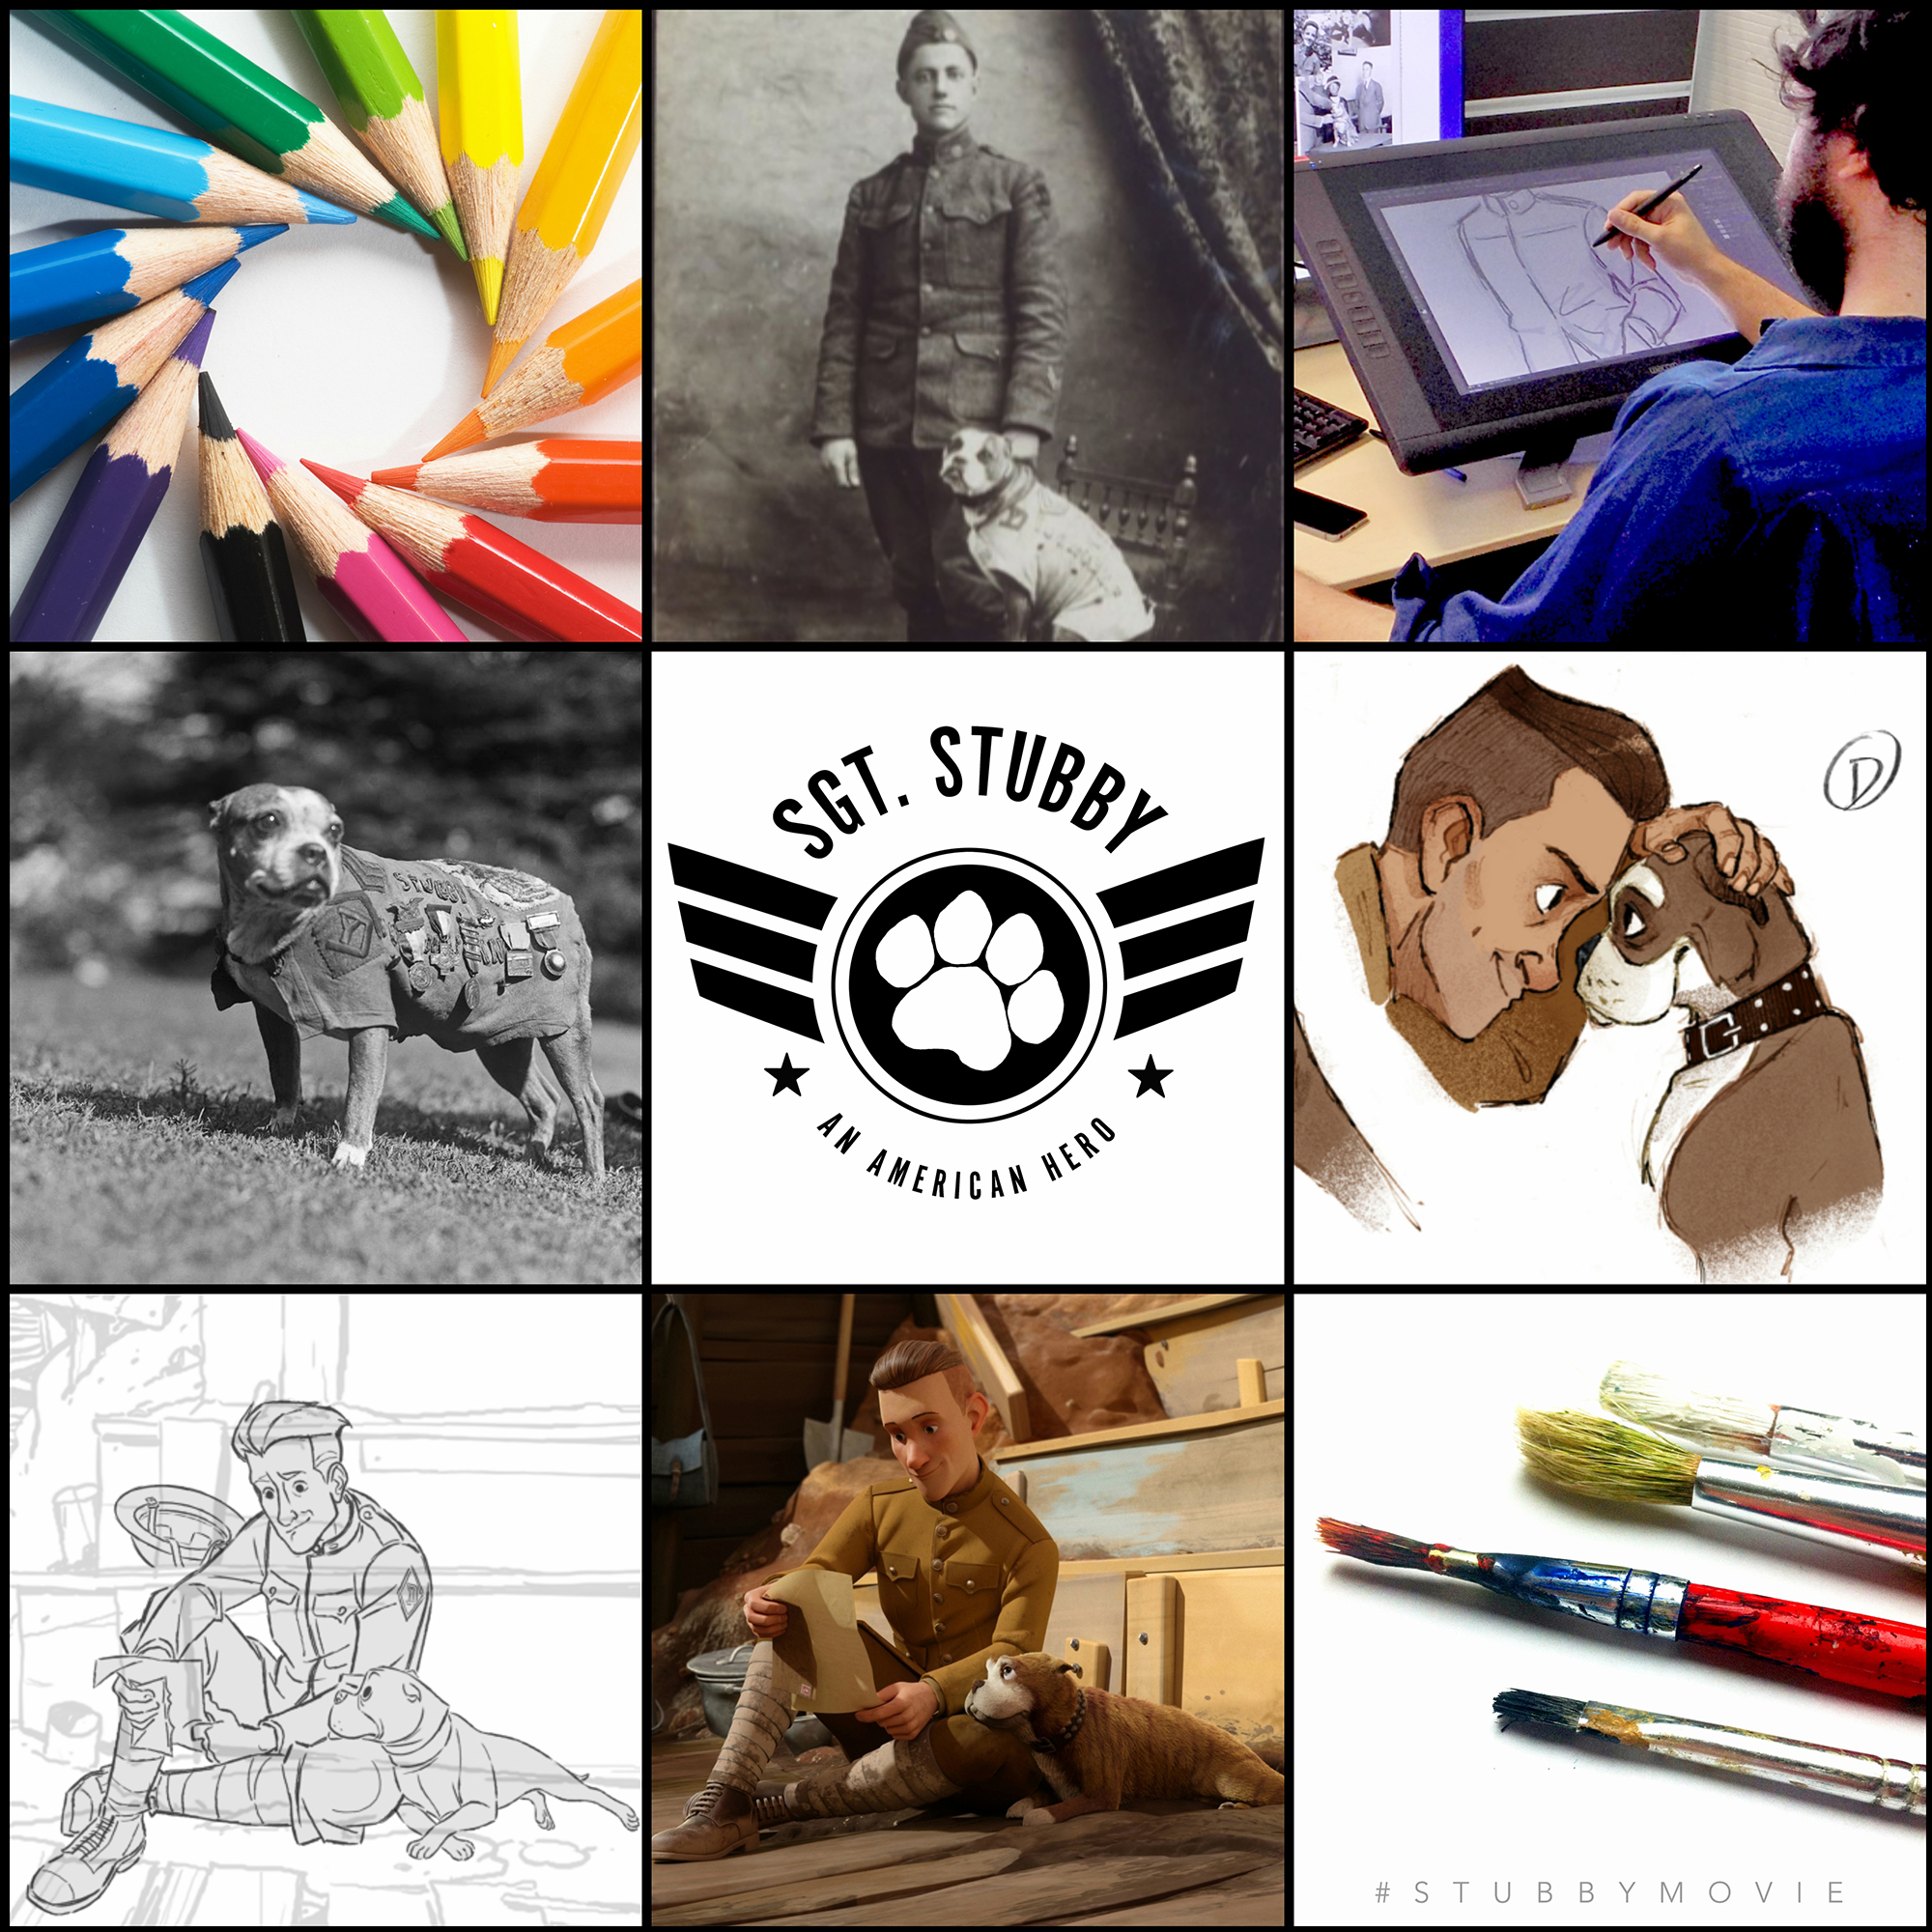 sgt-stubby-national-arts-and-humanities-month